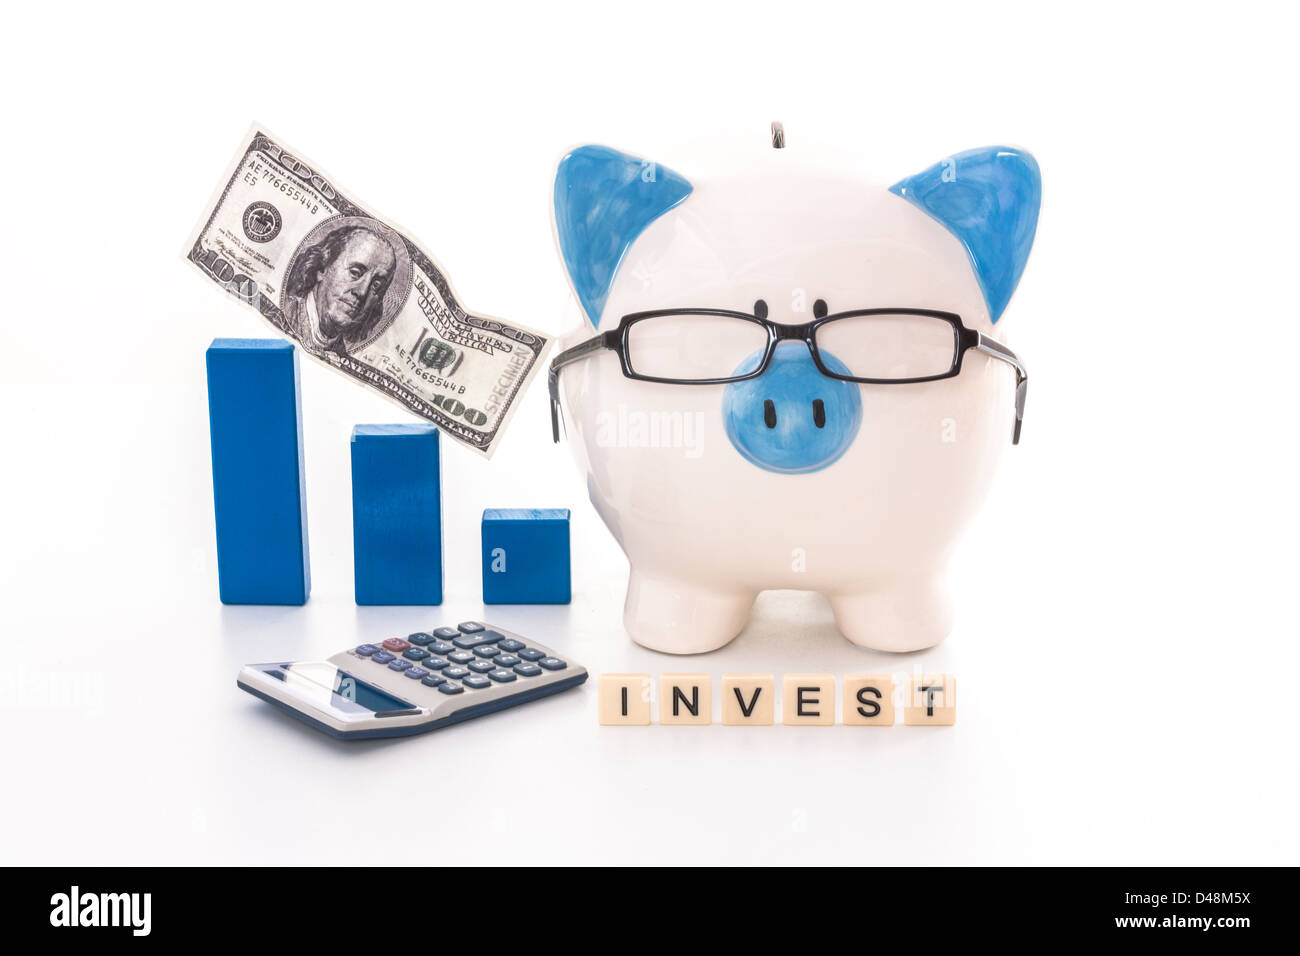 Blue and white piggy bank wearing glasses with invest message - Stock Image